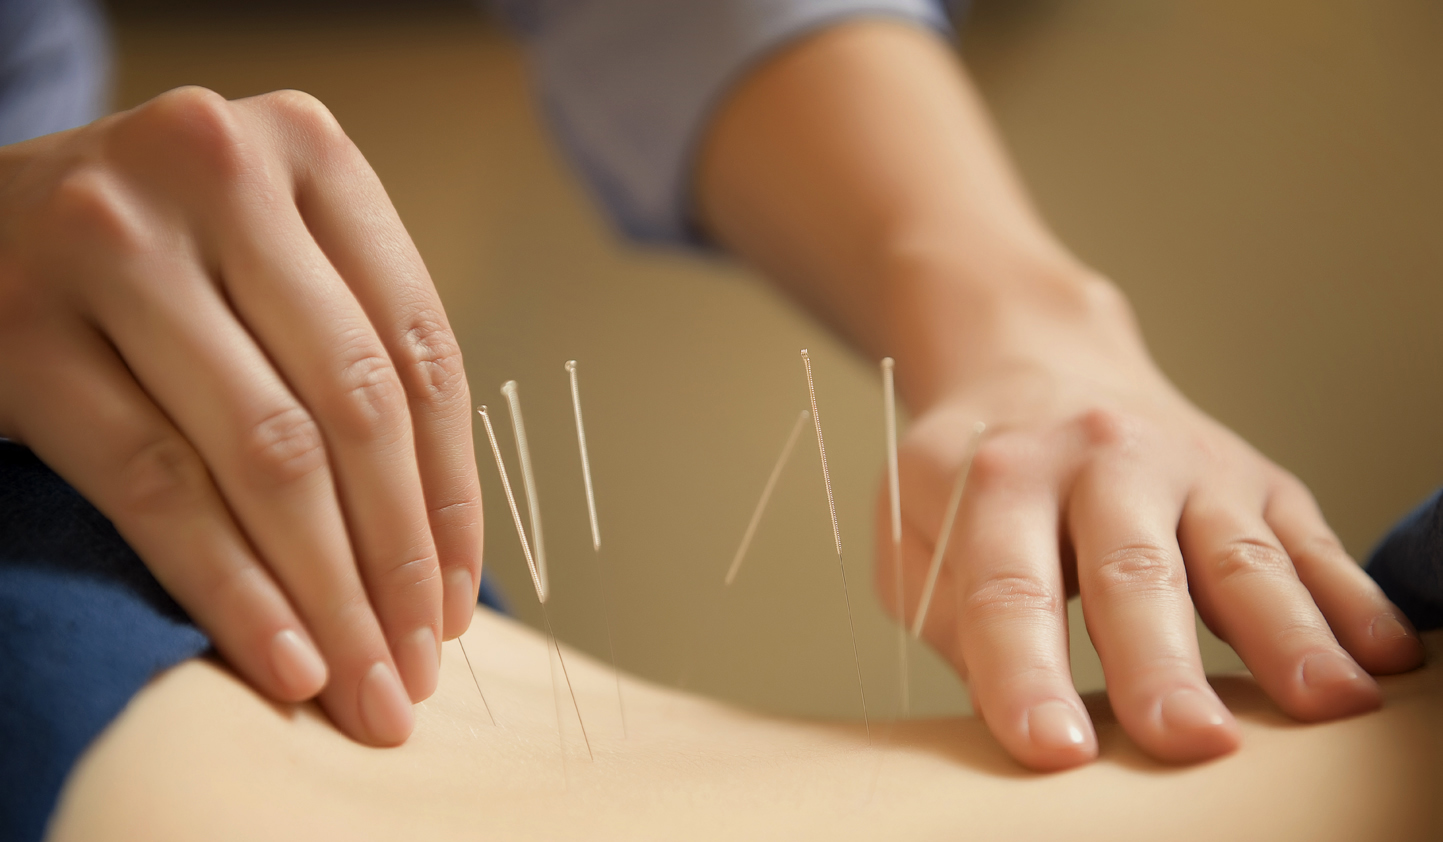 Acupuncture isn't useless after all (Picture: Getty)